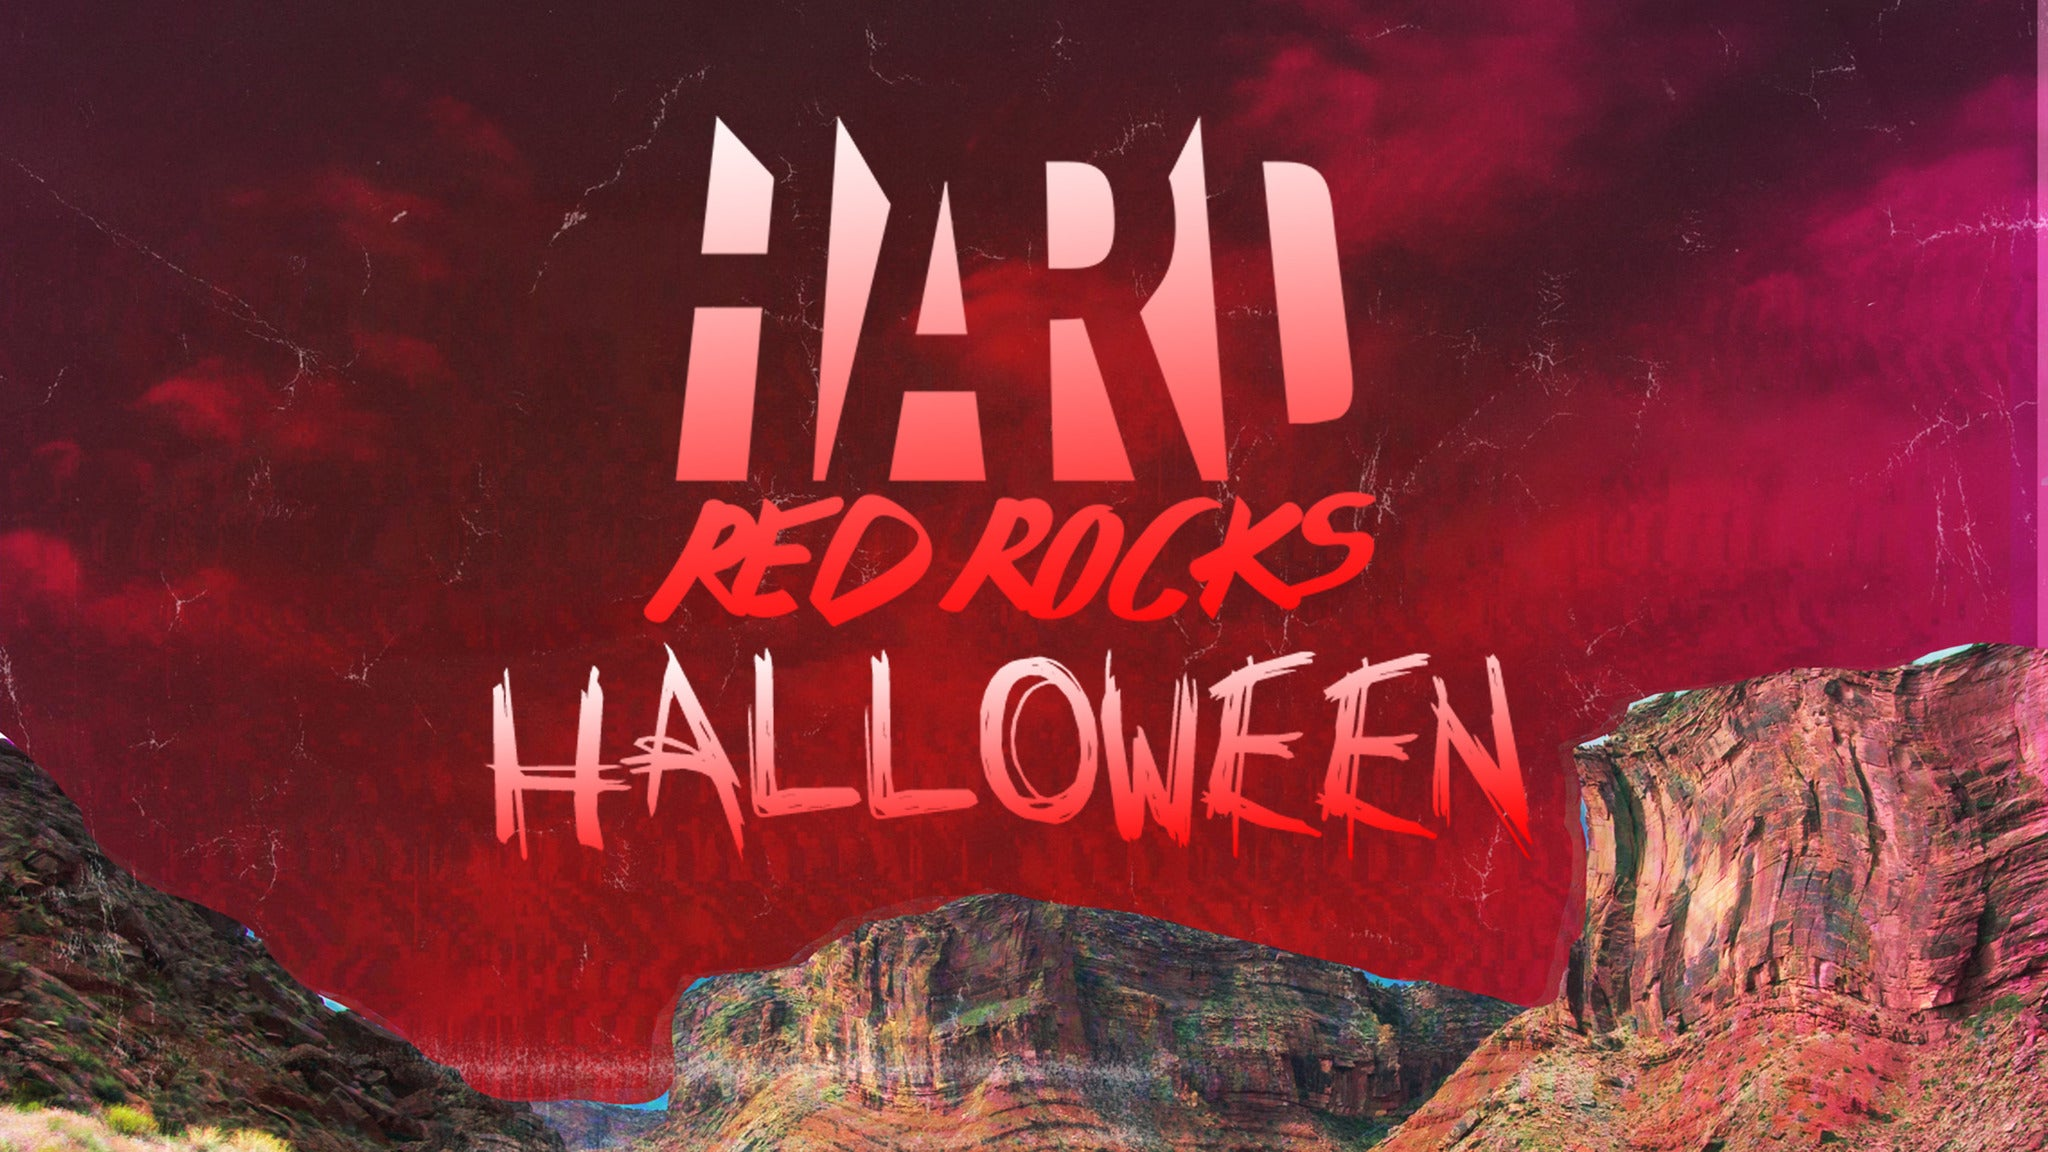 HARD HALLOWEEN RED ROCKS at Red Rocks Amphitheatre